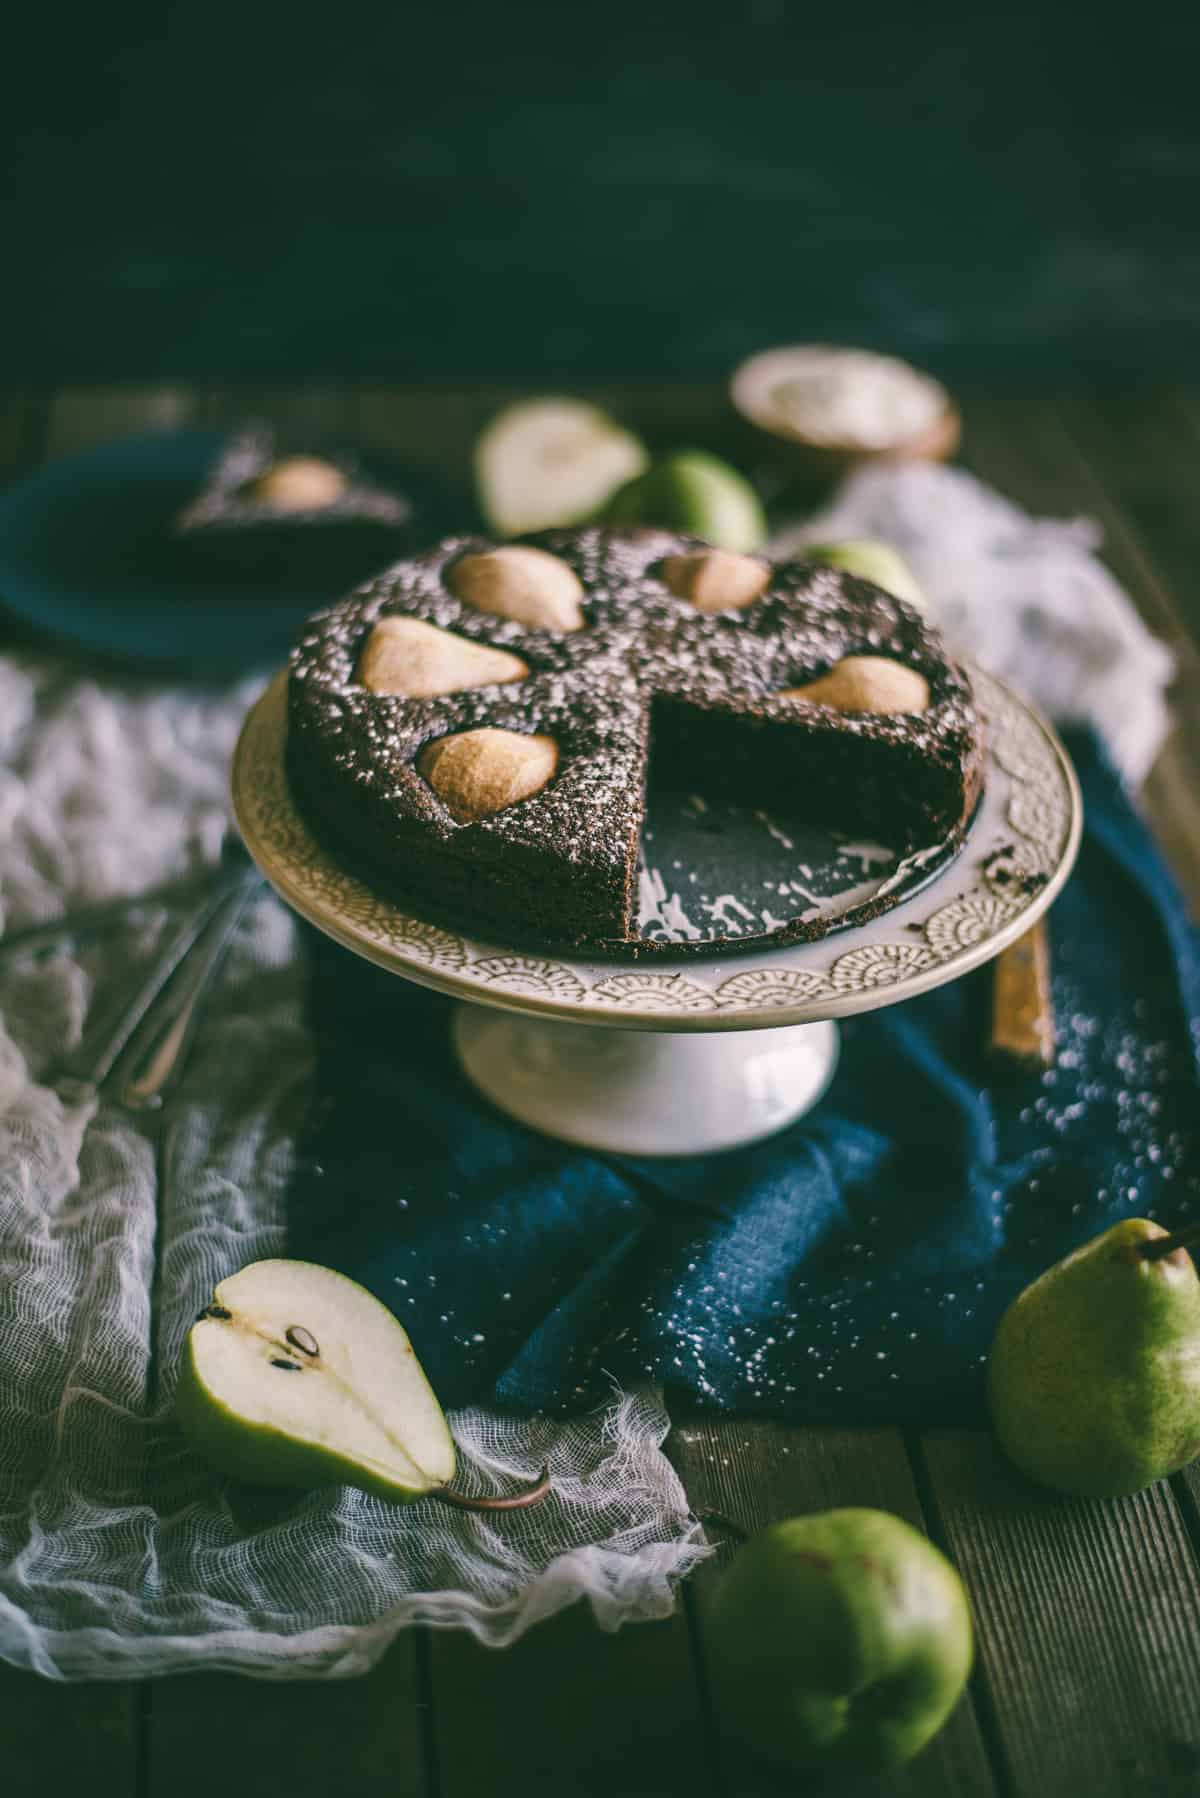 a chocolate cake with pears